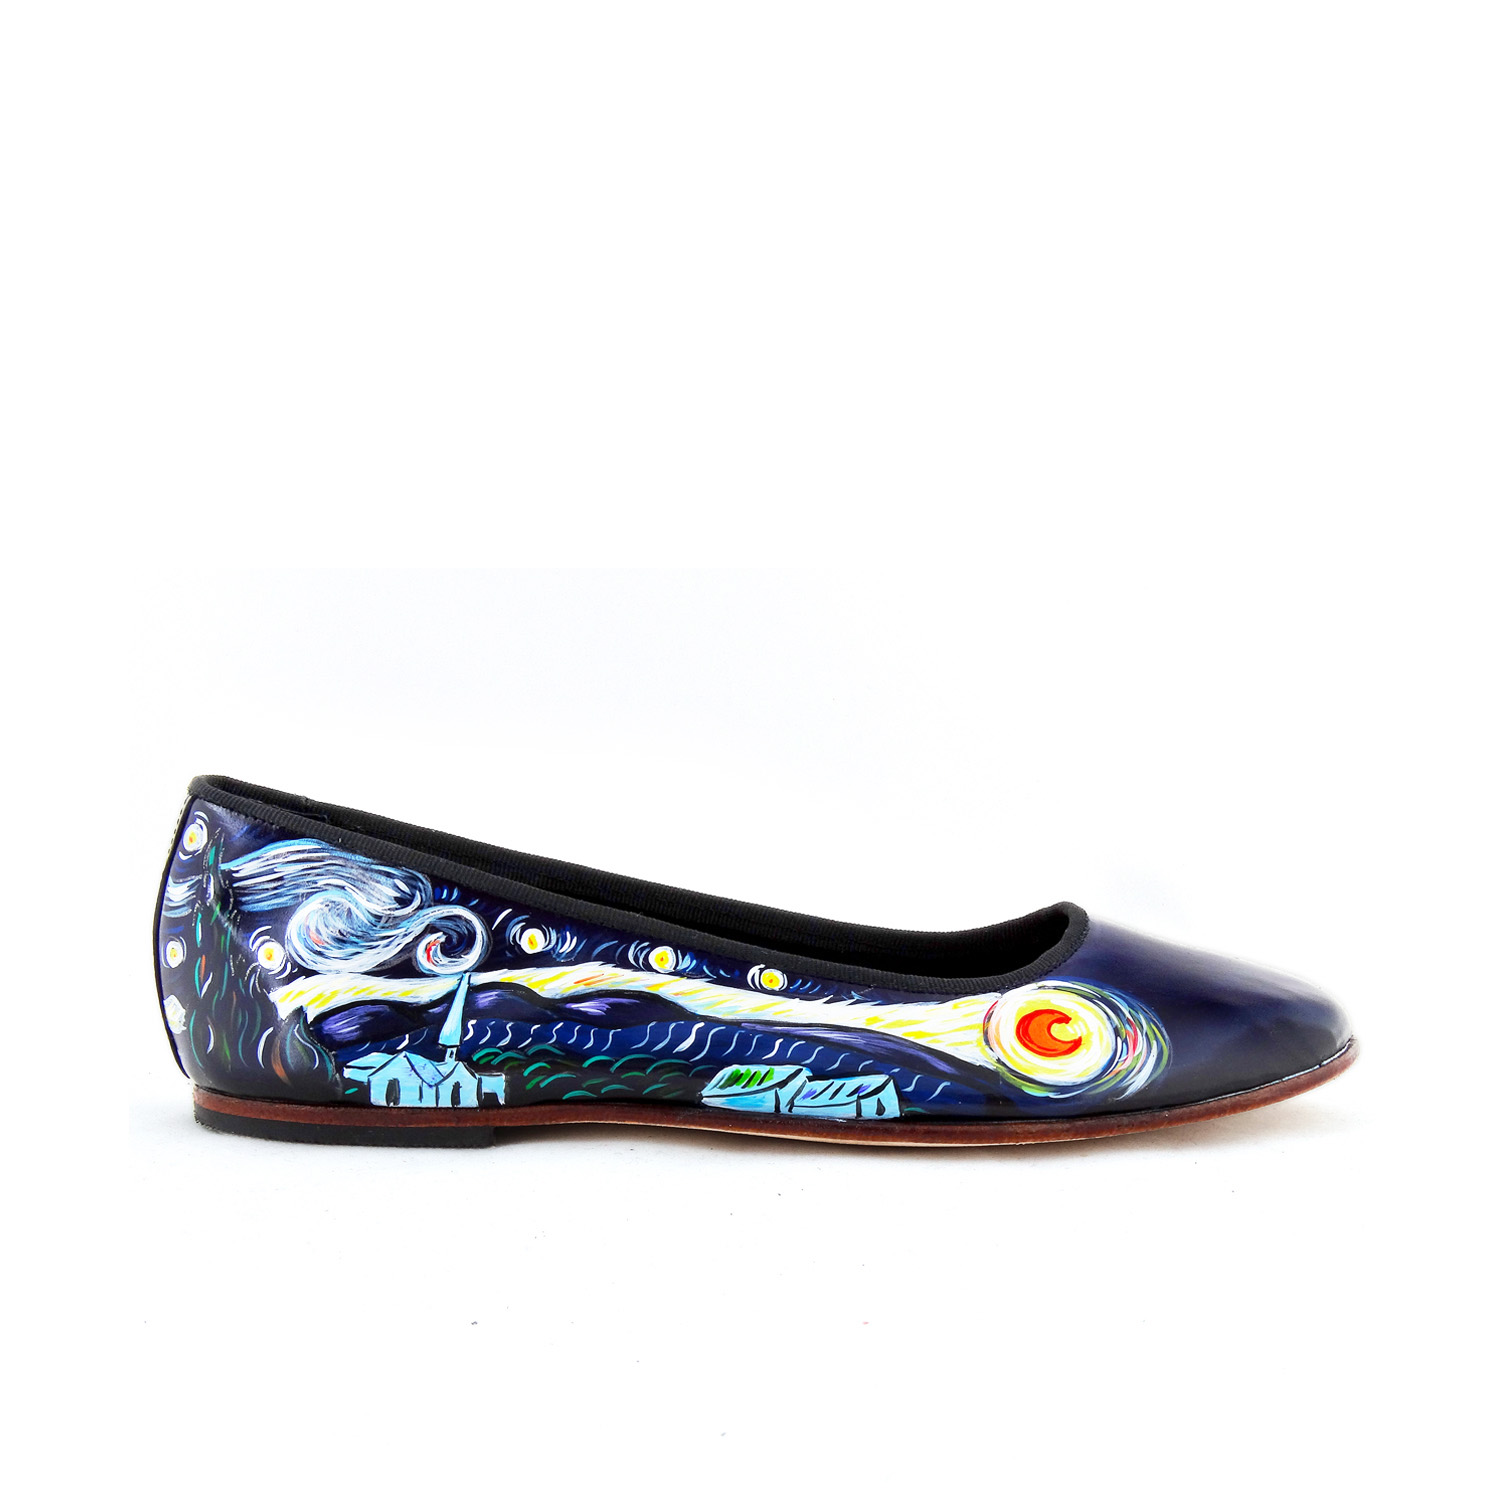 Hand-painted ballet flats - Starry Night by Van Gogh